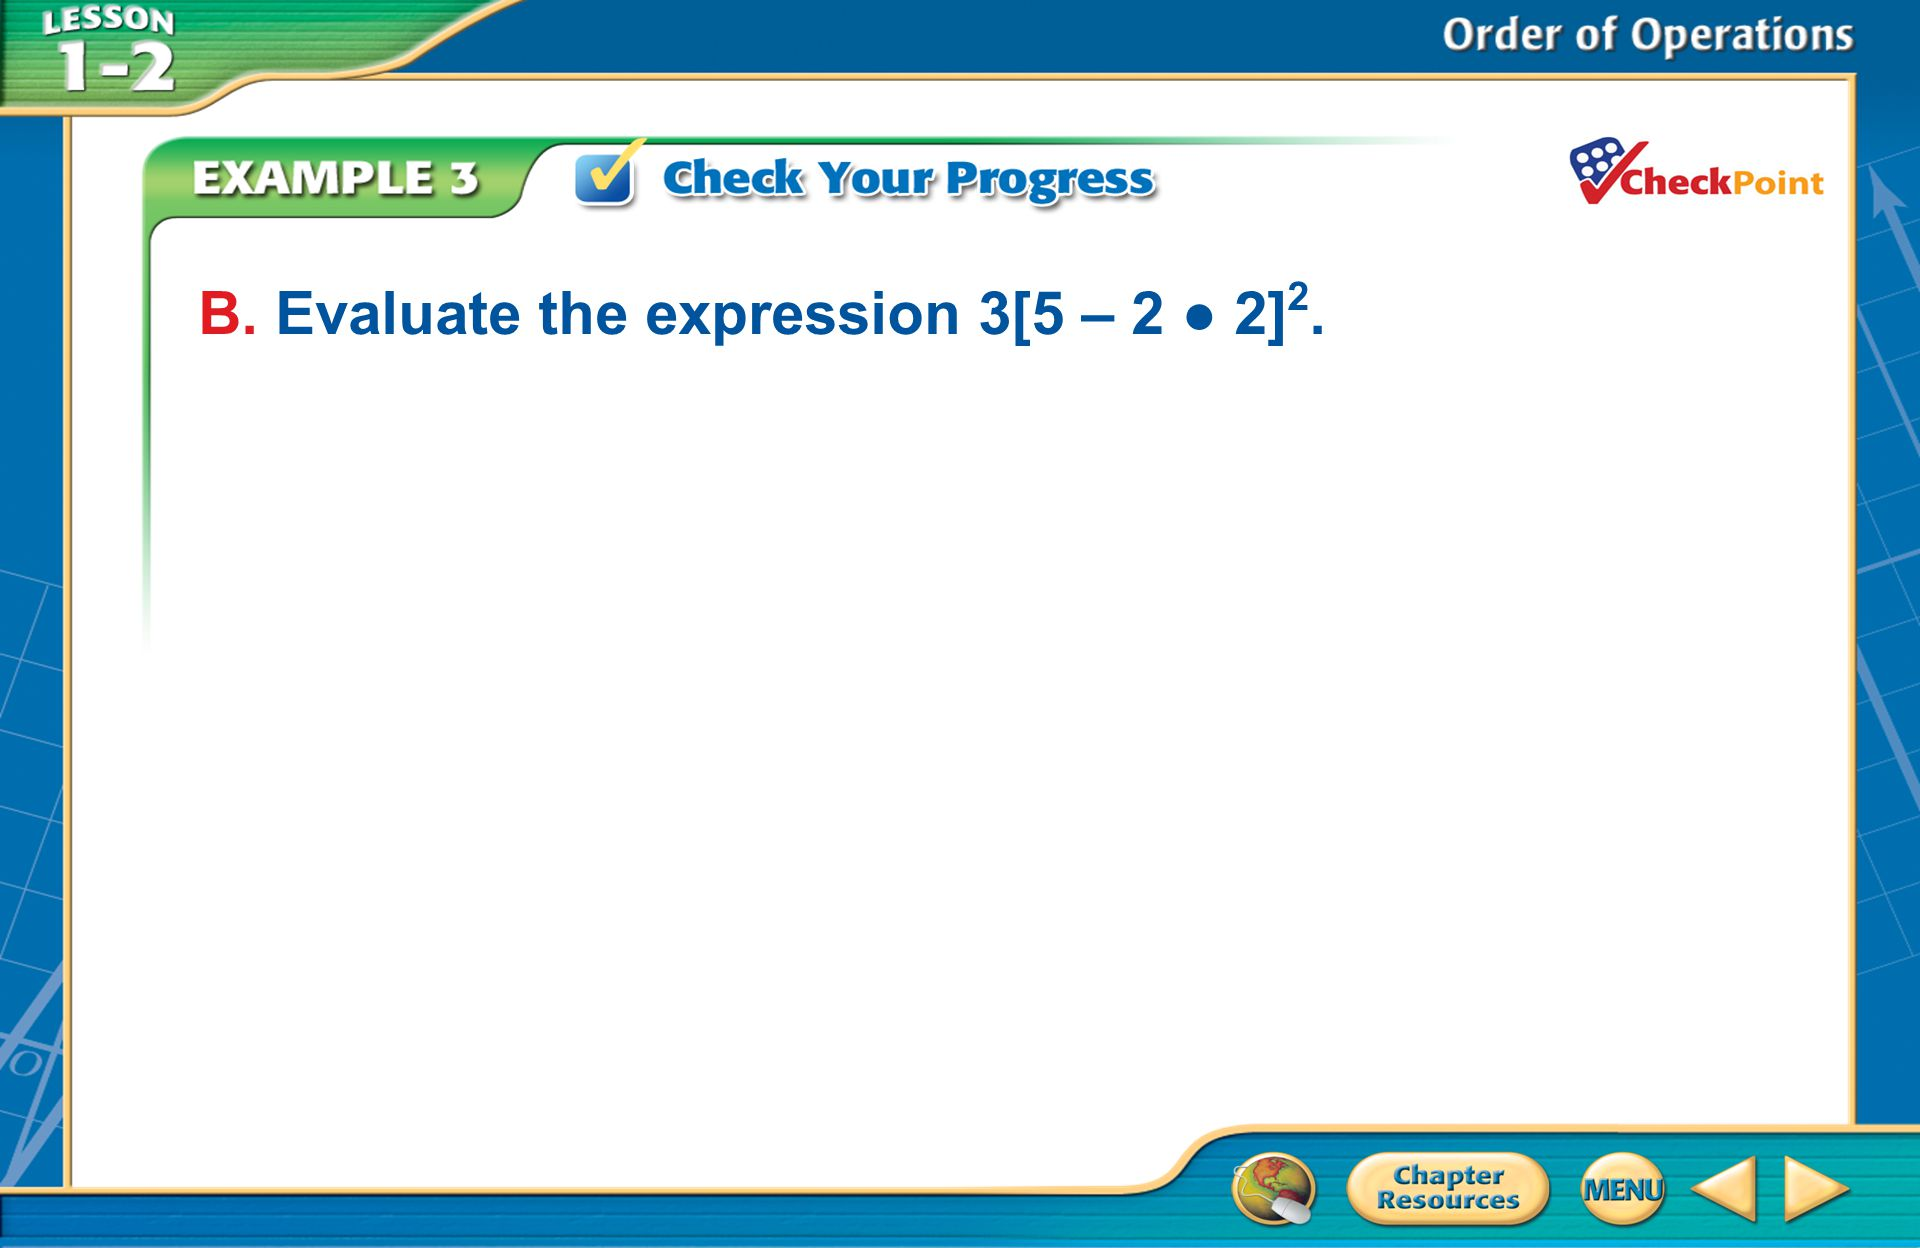 [Enter question here] B. Evaluate the expression 3[5 – 2 2] 2.